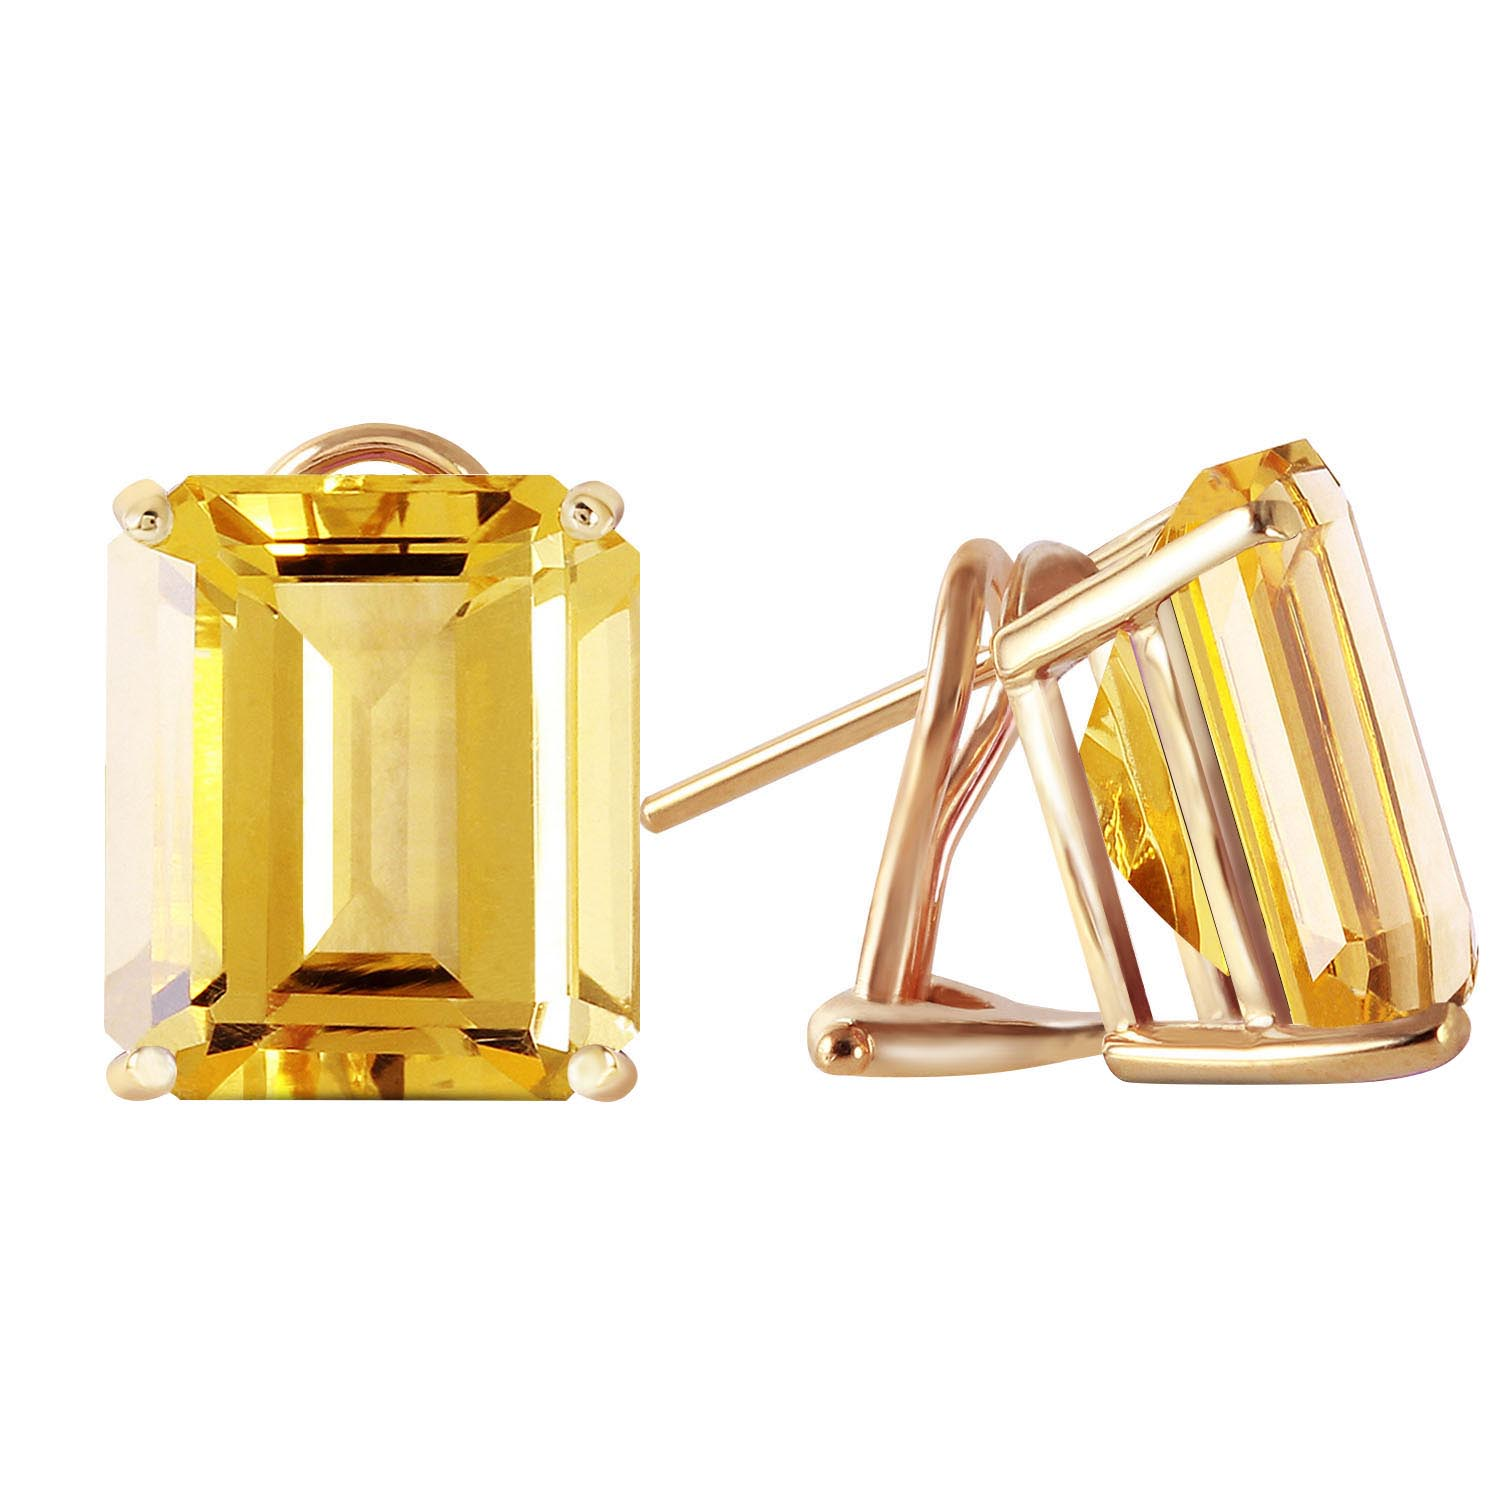 Citrine Stud Earrings 13.0ctw in 9ct Gold